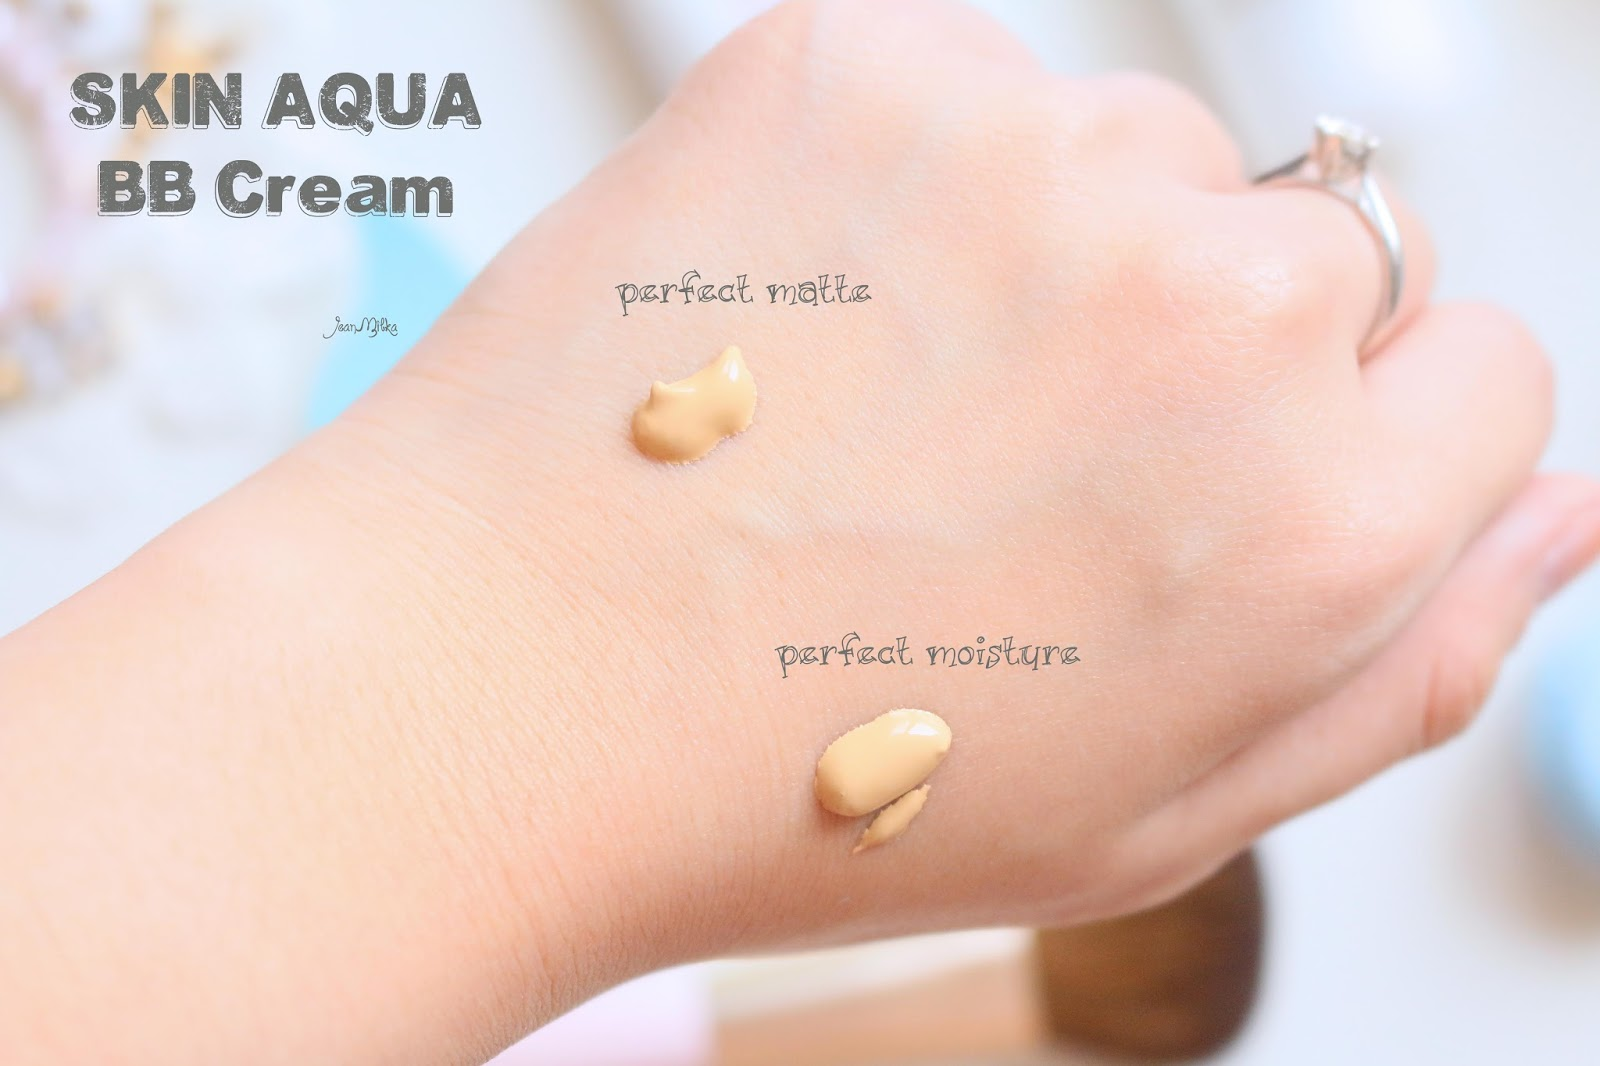 skin aqua, bb cream, makeup, review, japan, everyday, perfect matte, perfect moisture, swatch